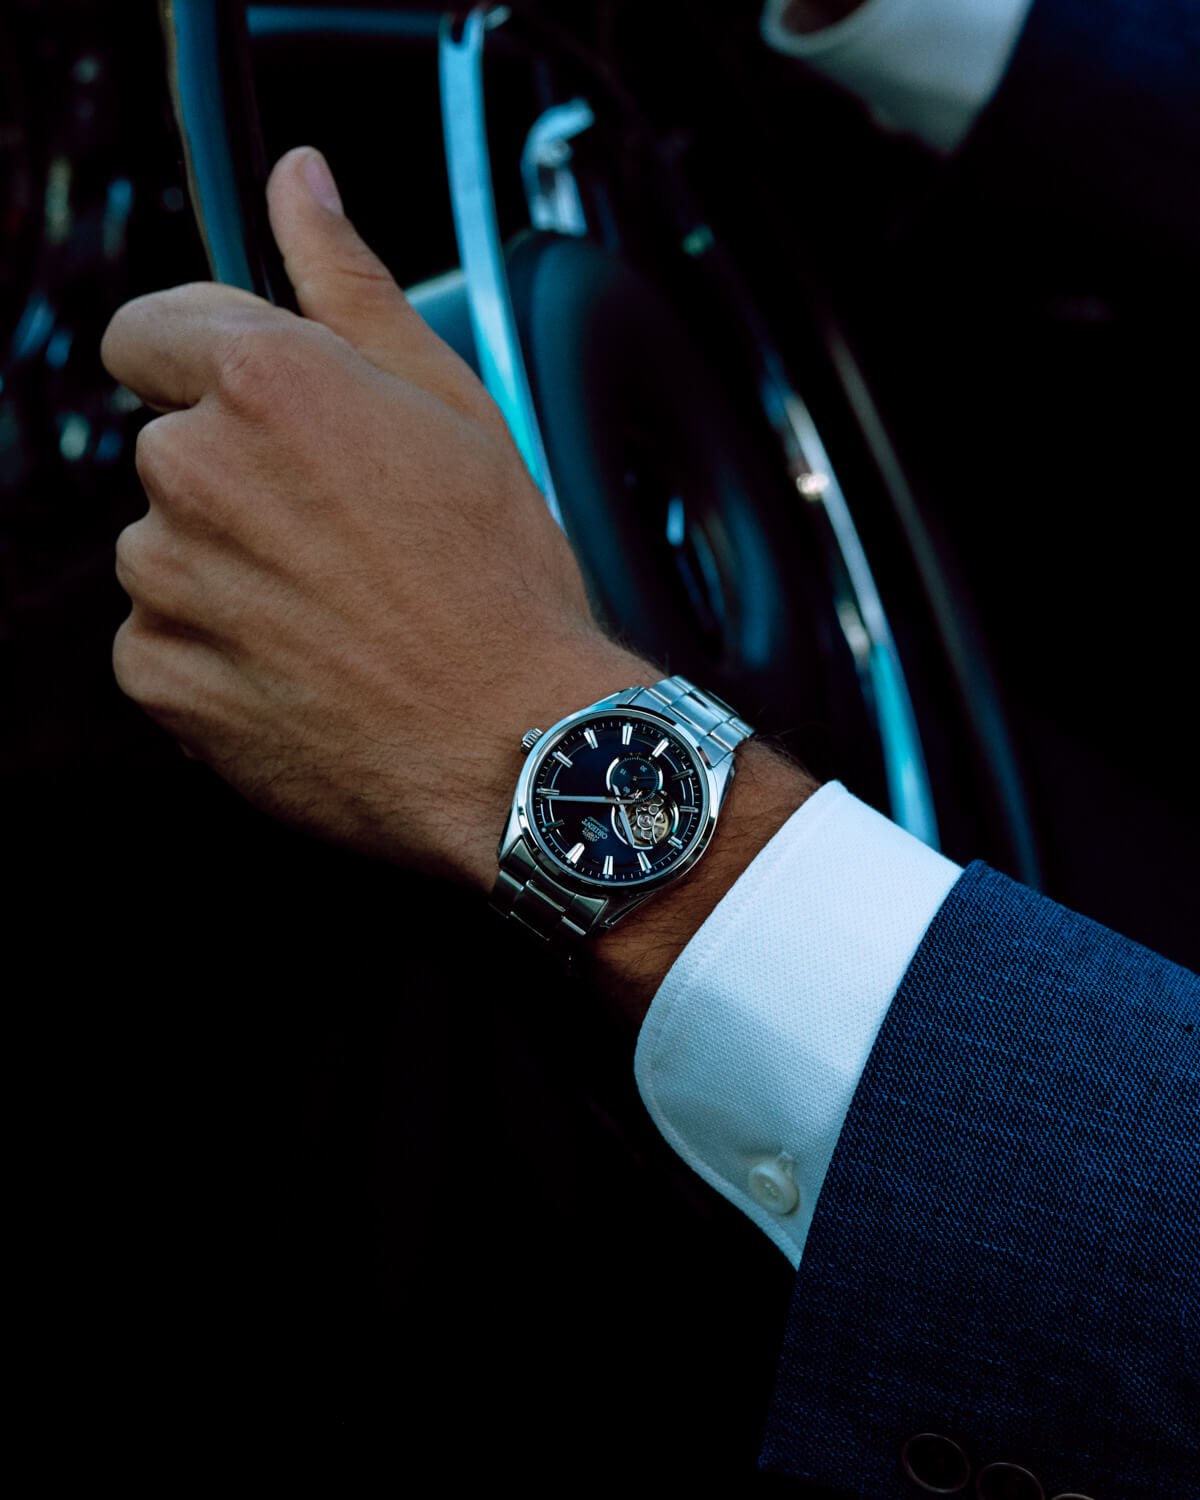 Lifestyle photographer Tim Cole, Orient watch, classic car